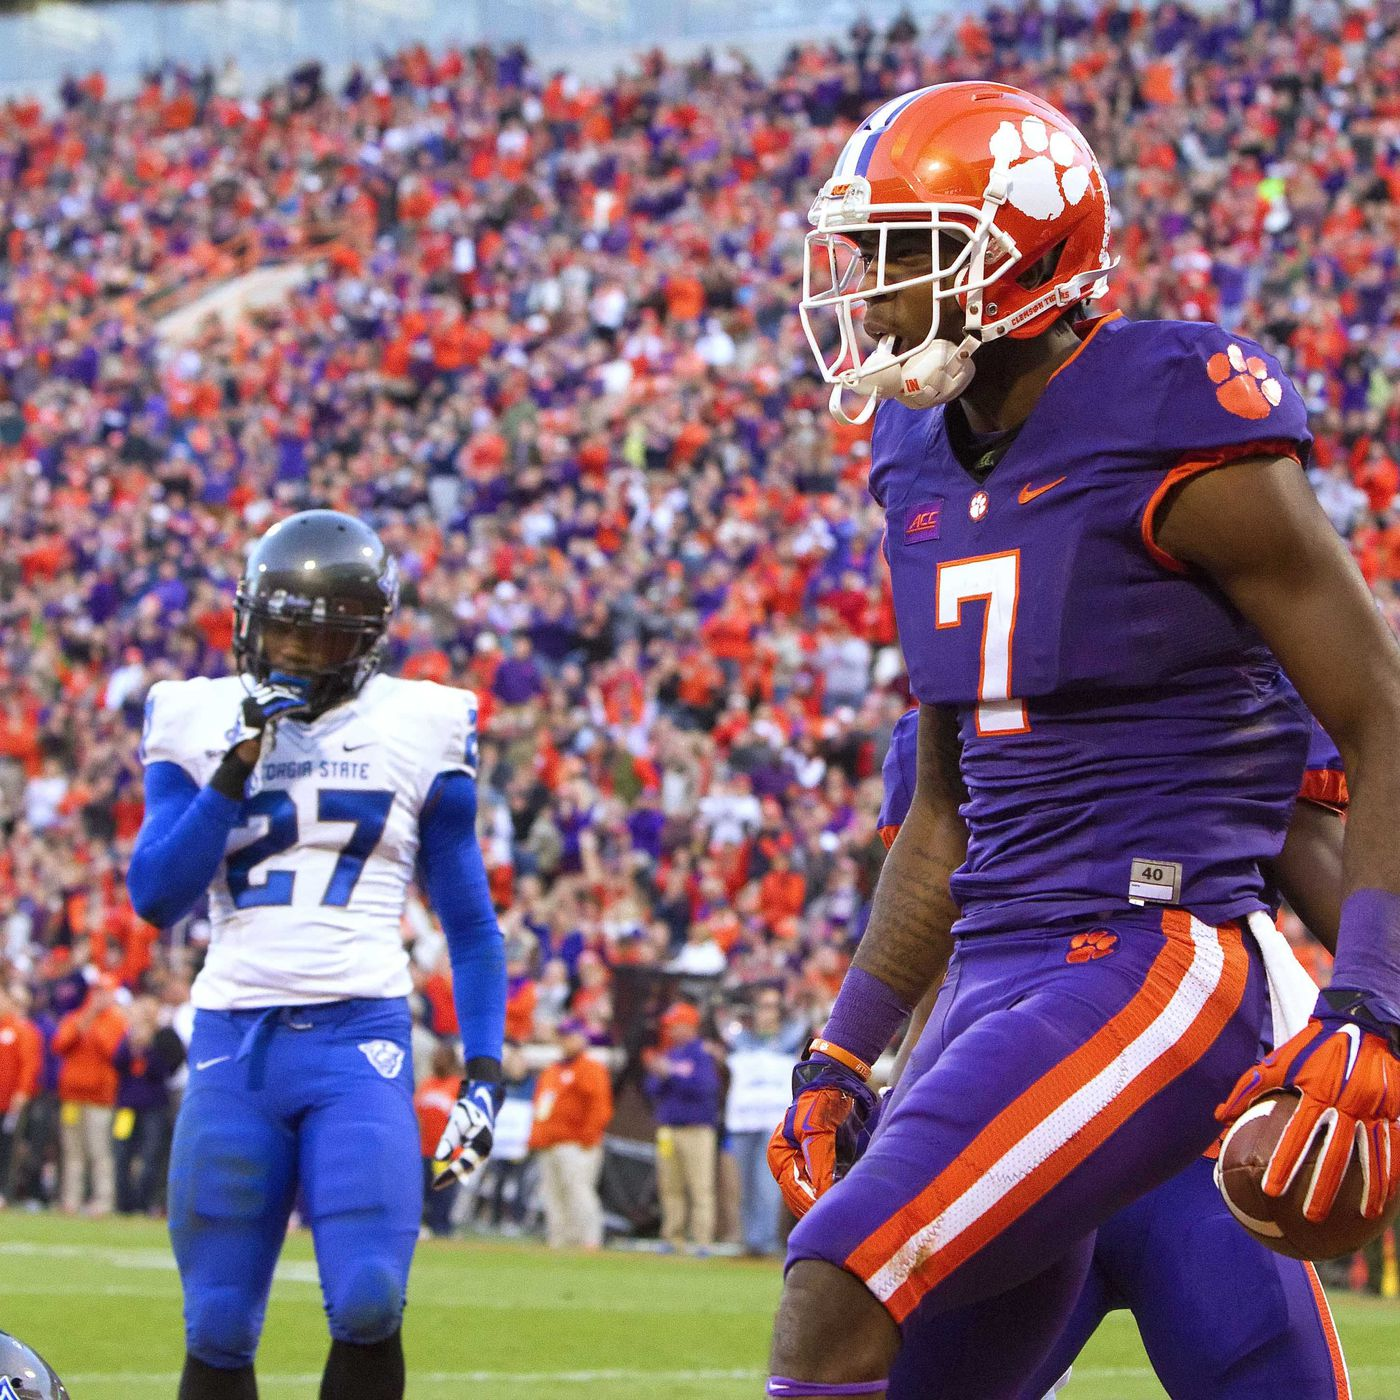 Clemson Vs Georgia Tech Tv Schedule Game Time 2017 Nfl Draft Prospects Niners Nation